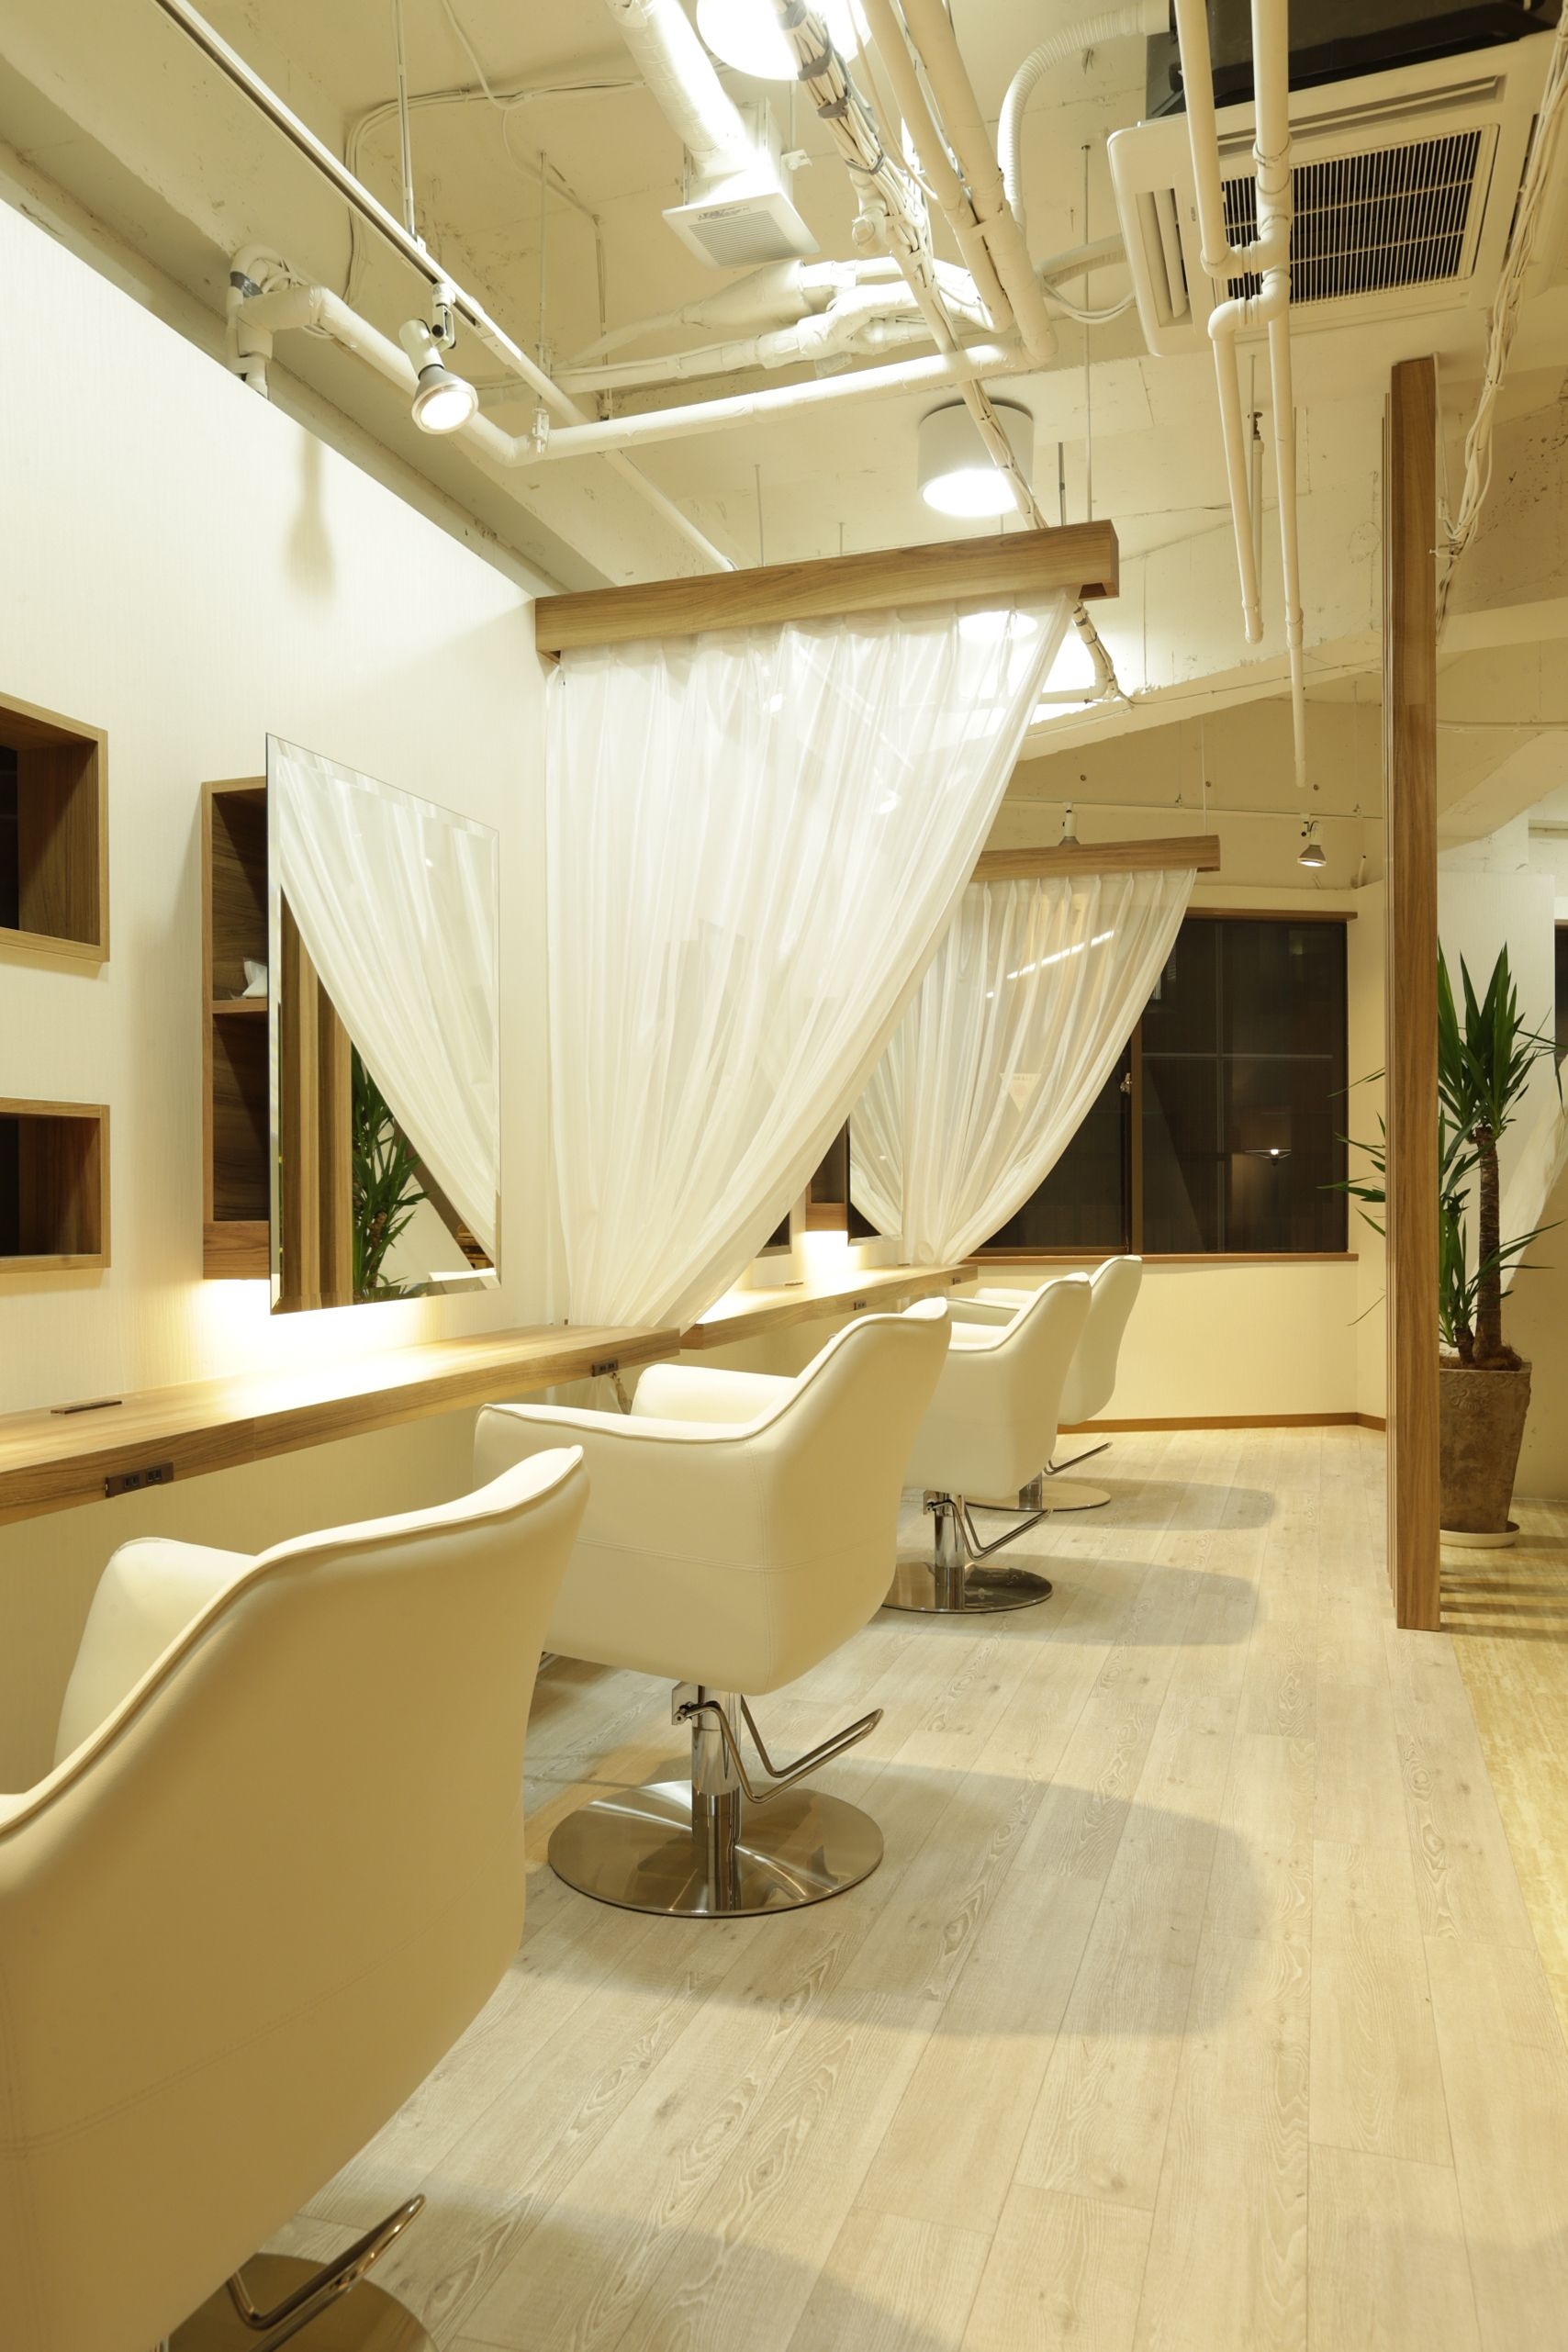 Beauty Salon Interior Design Ideas | + Chairs + Mirrors + Space + Decor +  Japan